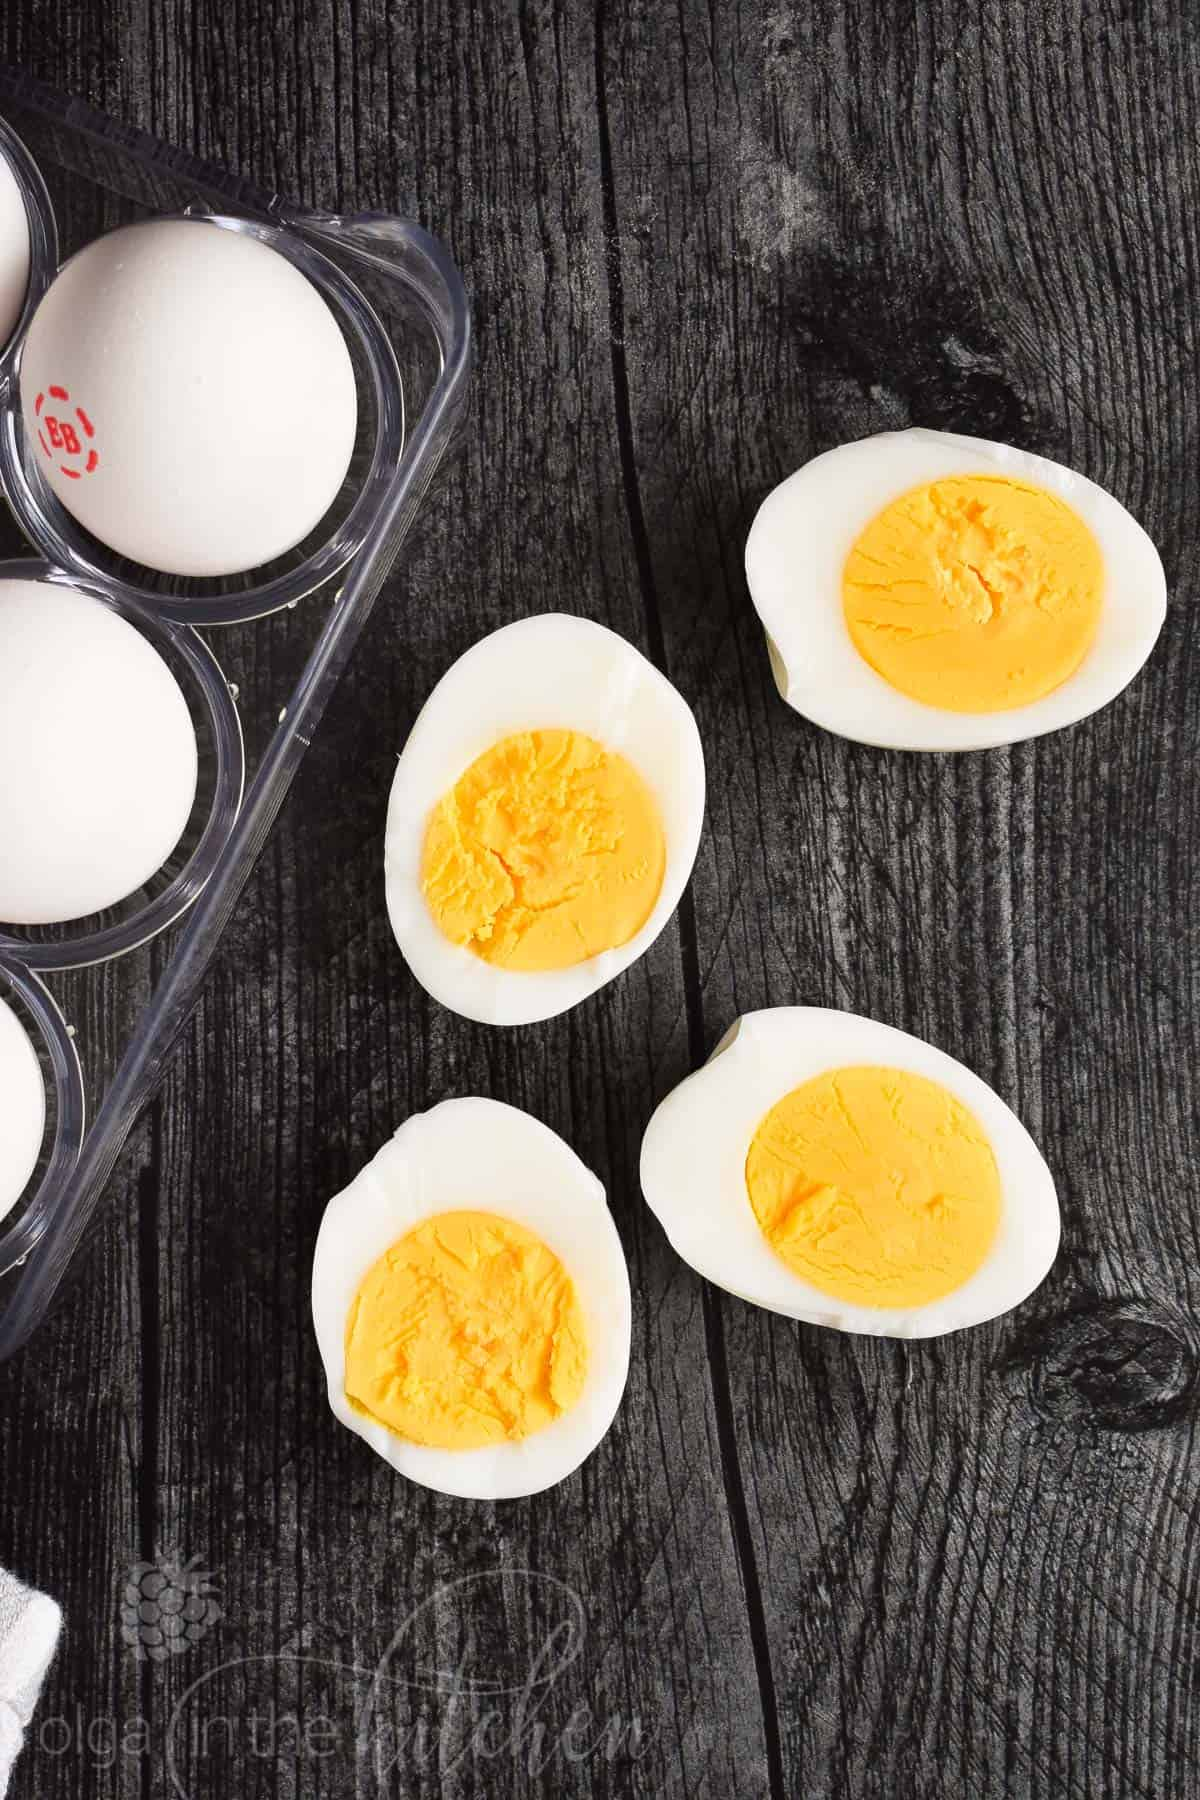 Learn how to make Hard Boiled Eggs. Everyone needs an easy go-to method for making perfectly cooked eggs every time. #hardboiledeggs #howtopeeleggs #boiledeggs #olgainthekitchen